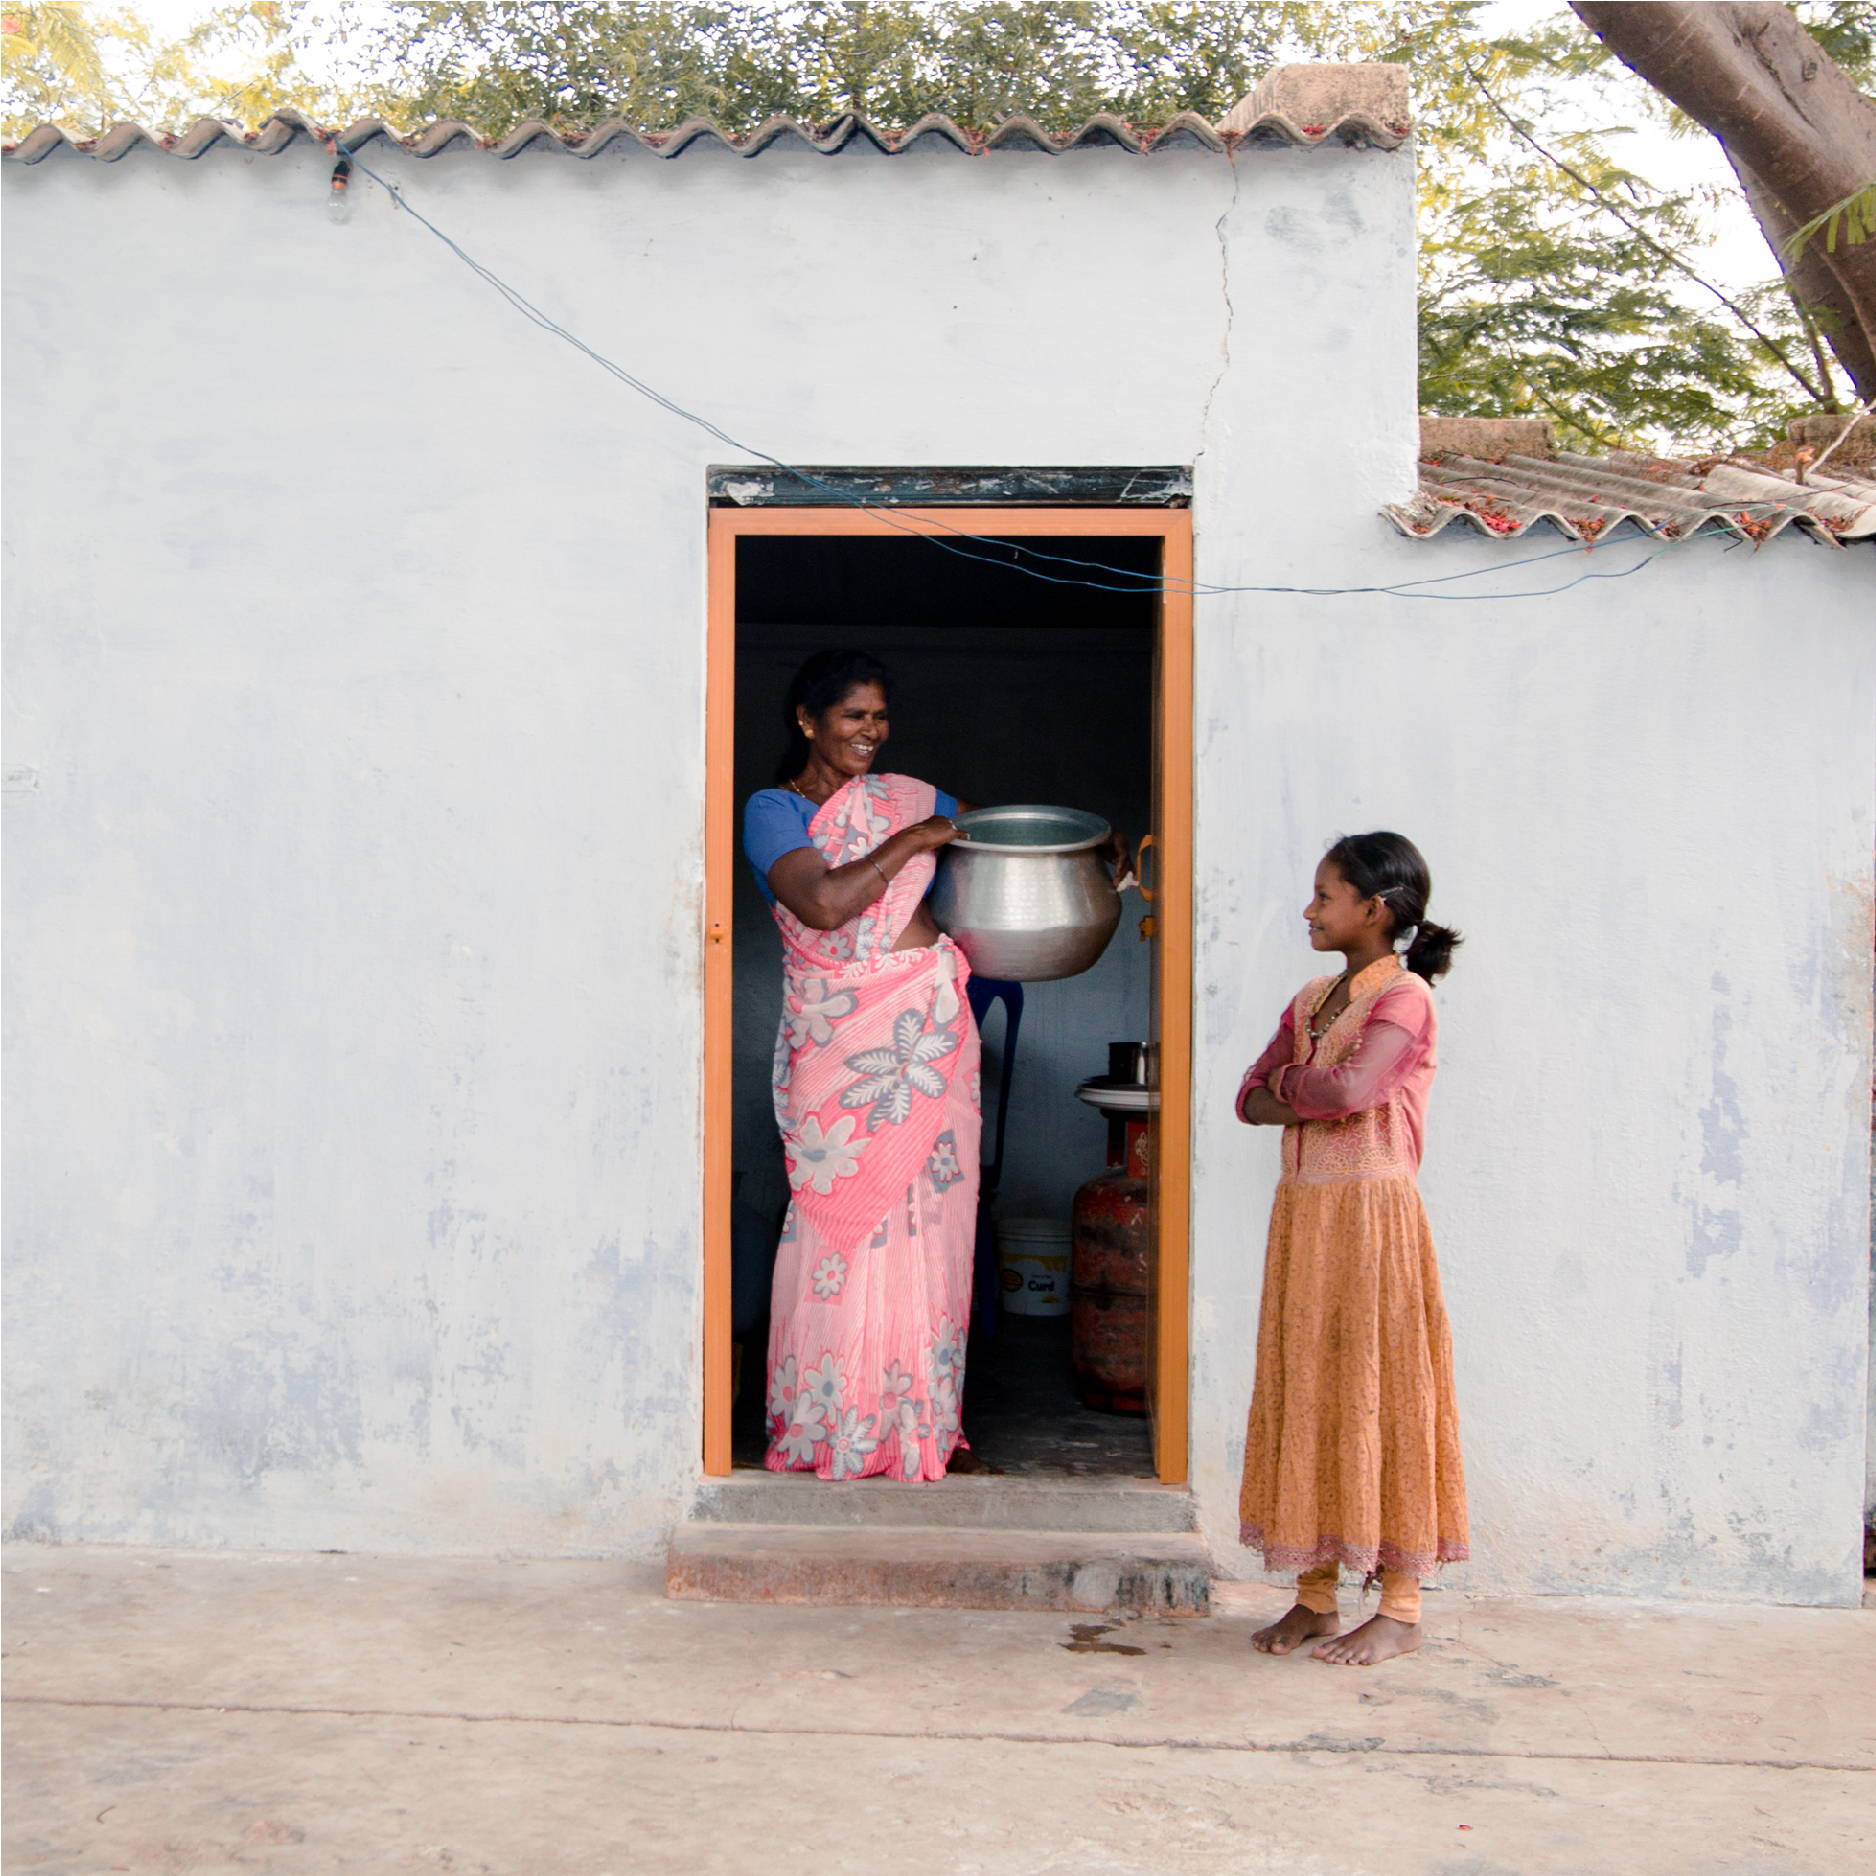 An Indian woman stands next to a young girl in a doorway holding a pot of food.